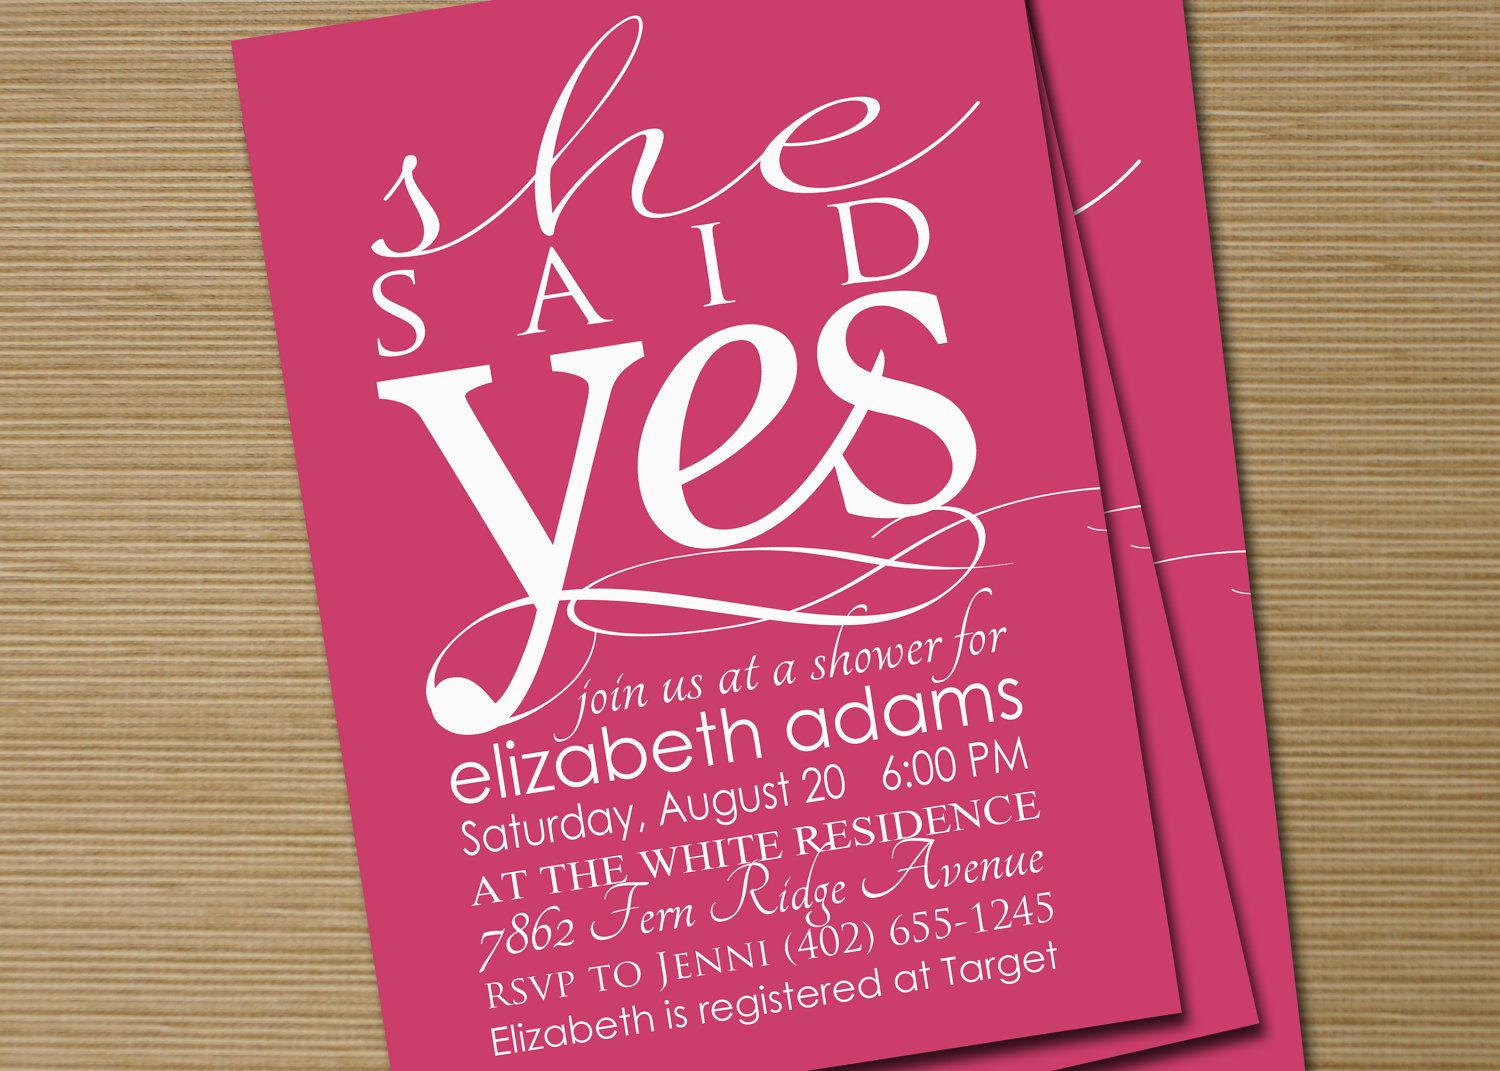 When Should Wedding Invites Be Sent: 100+ When Should Wedding Invitations Be Sent Emily Post